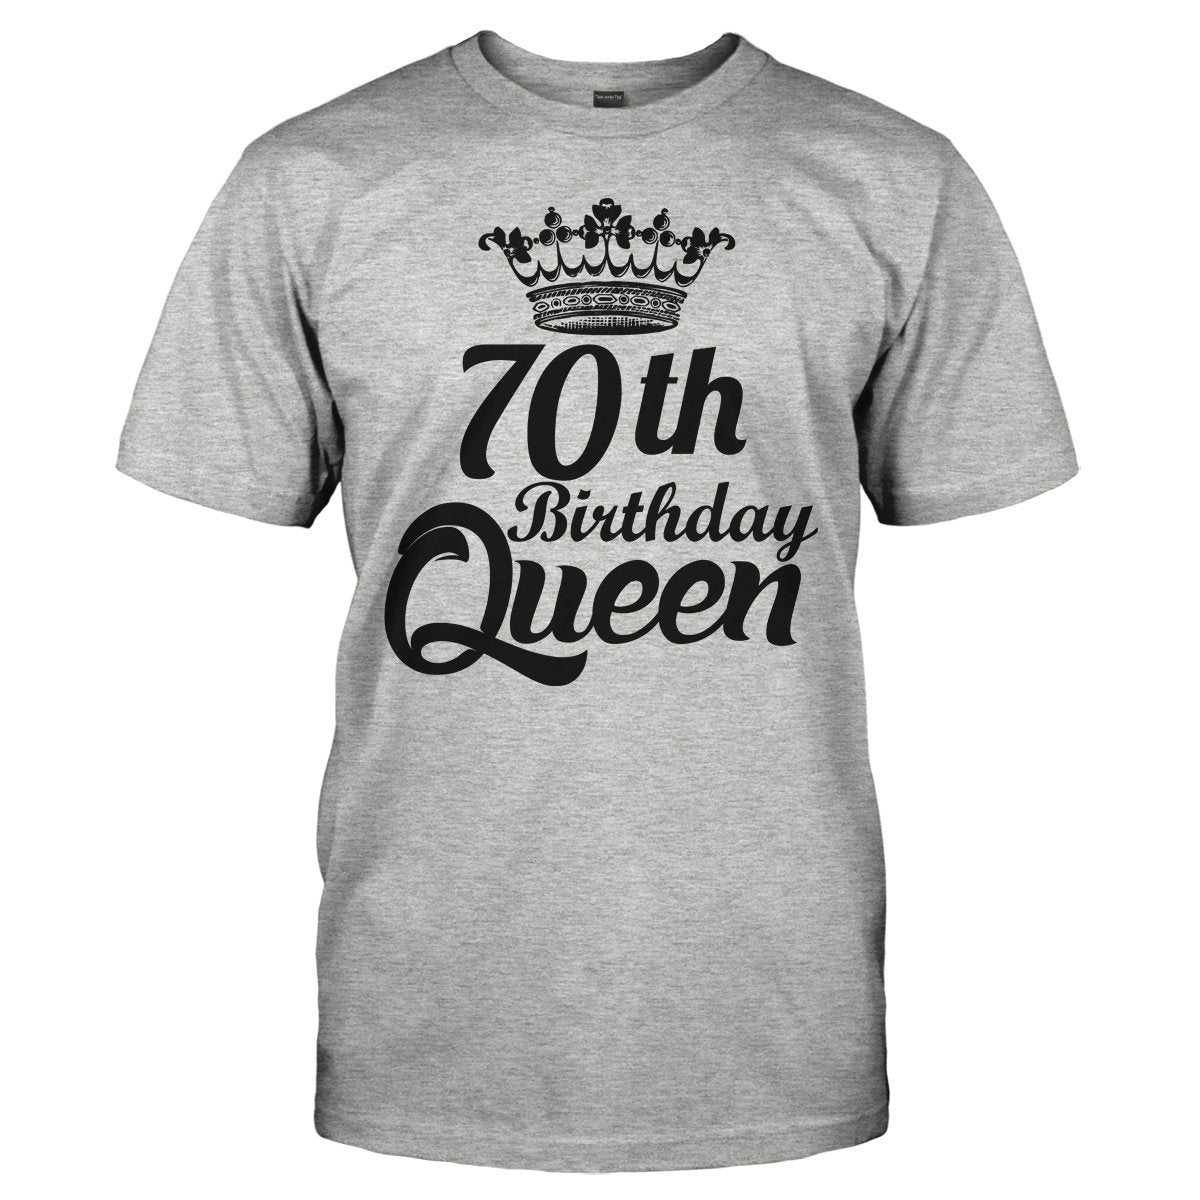 T Shirt Design For 70th Birthday